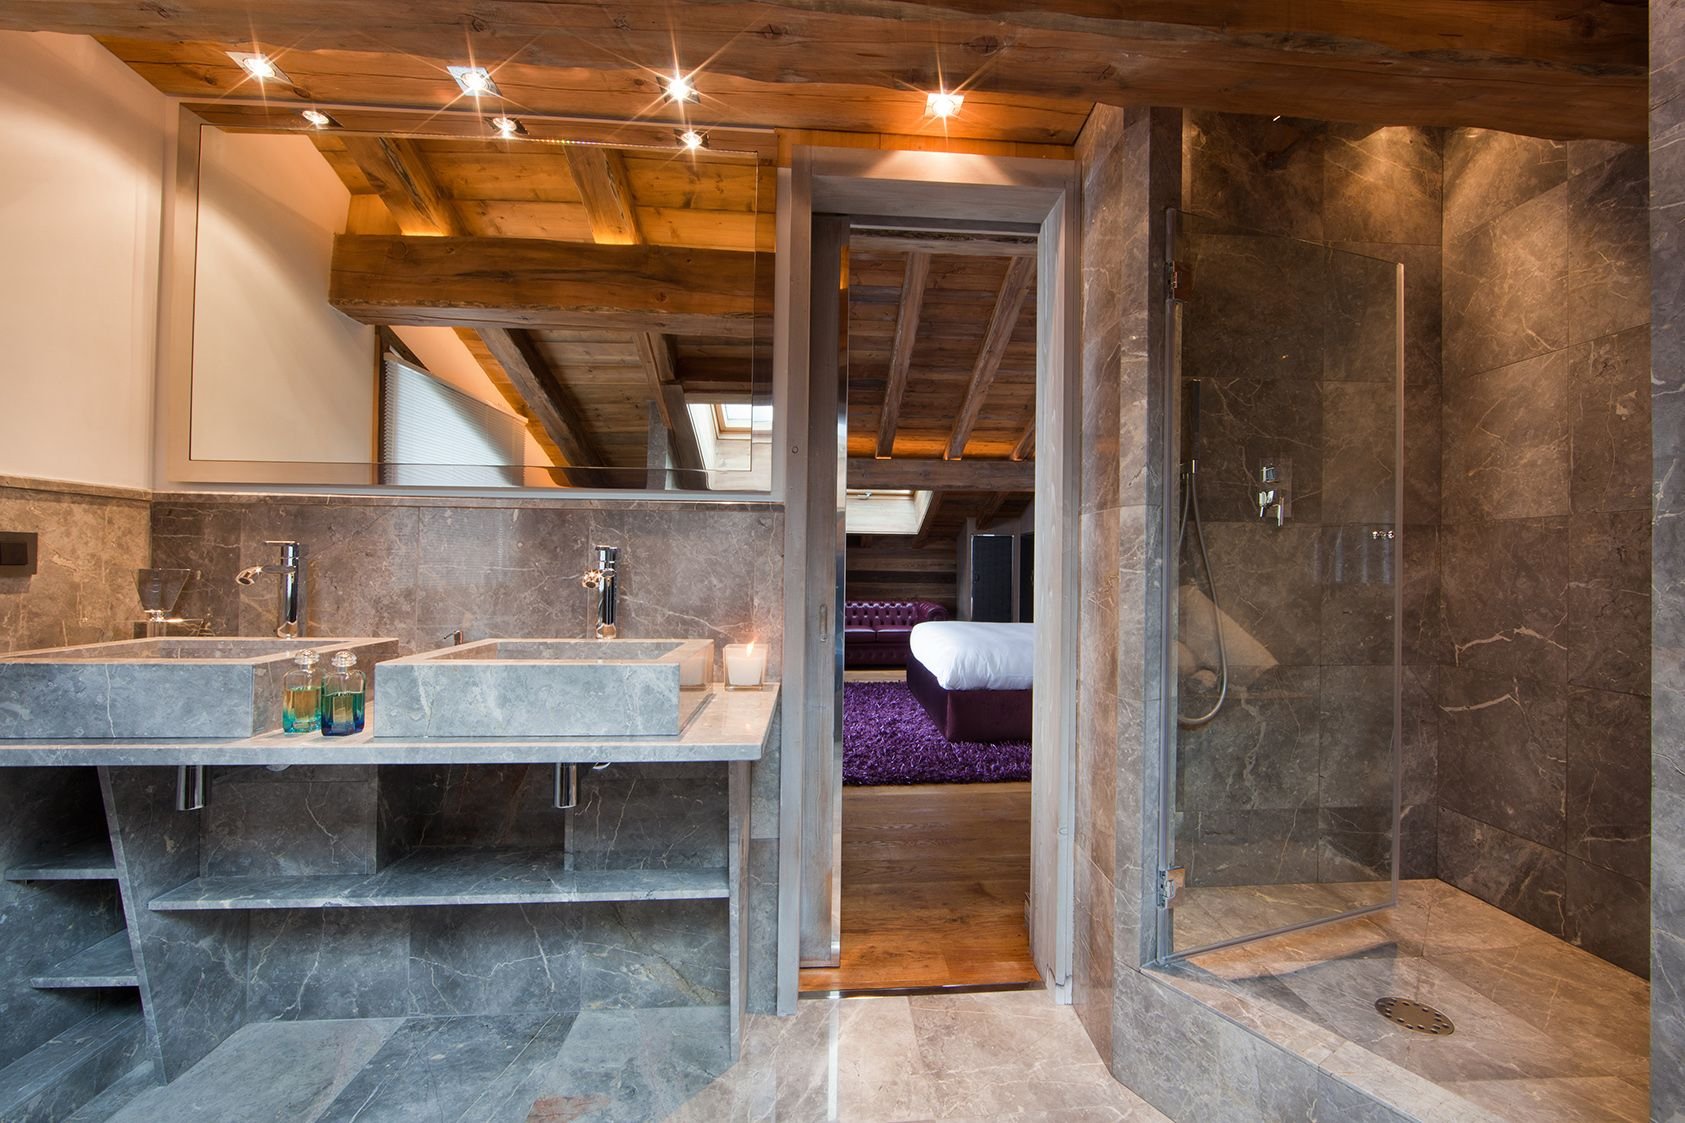 Chalet Luxe  Ikone  Bathroom  Bedroom  Edge Ikone  Ikhome  Luxury Chalet   Salle De Bain